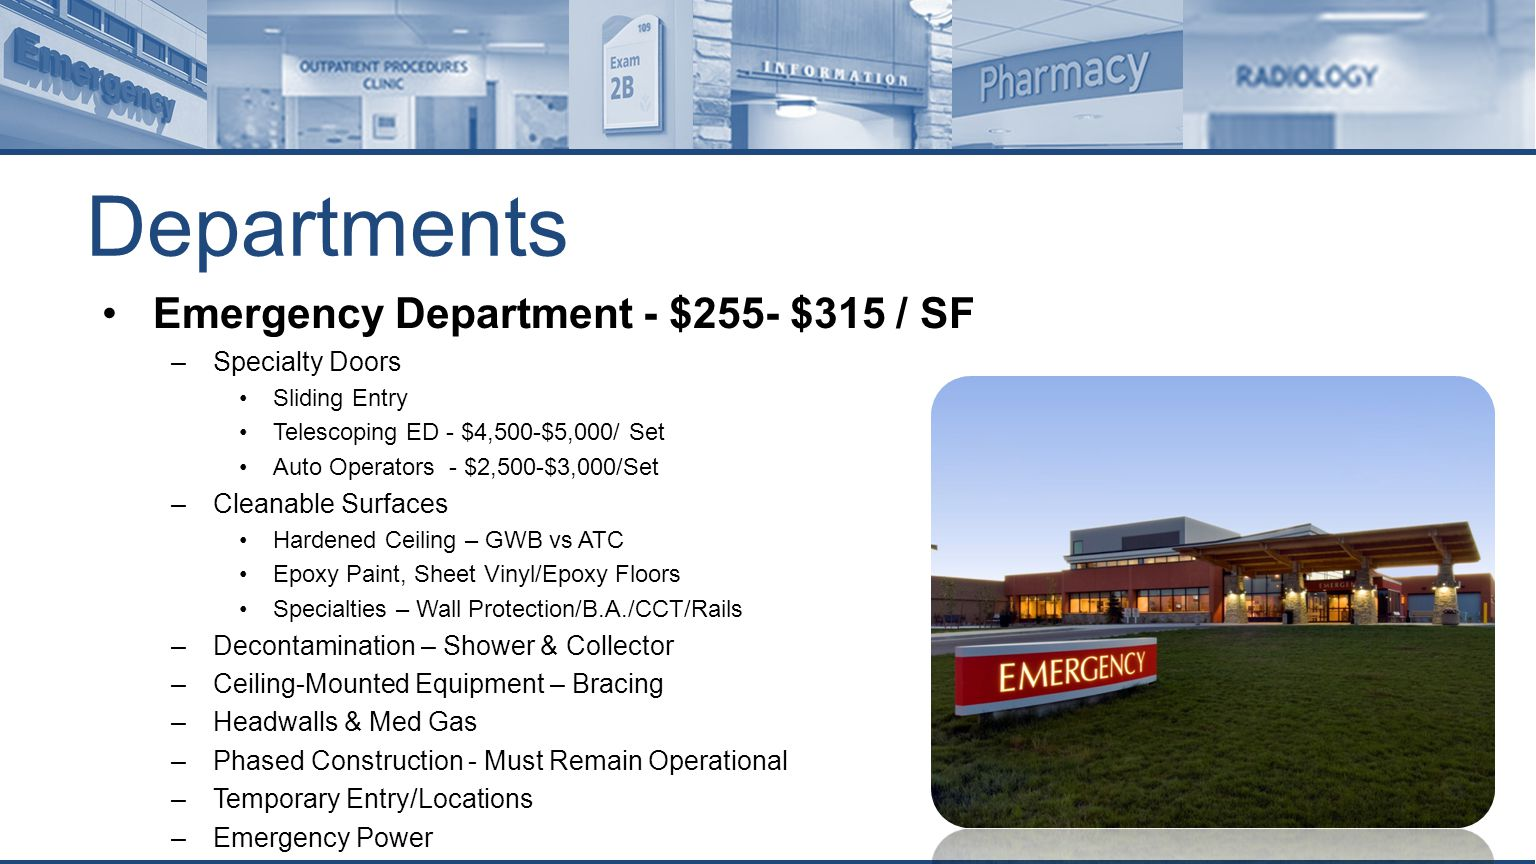 Departments Emergency Department - $255- $315 / SF –Specialty Doors Sliding Entry Telescoping ED - $4,500-$5,000/ Set Auto Operators - $2,500-$3,000/Set –Cleanable Surfaces Hardened Ceiling – GWB vs ATC Epoxy Paint, Sheet Vinyl/Epoxy Floors Specialties – Wall Protection/B.A./CCT/Rails –Decontamination – Shower & Collector –Ceiling-Mounted Equipment – Bracing –Headwalls & Med Gas –Phased Construction - Must Remain Operational –Temporary Entry/Locations –Emergency Power